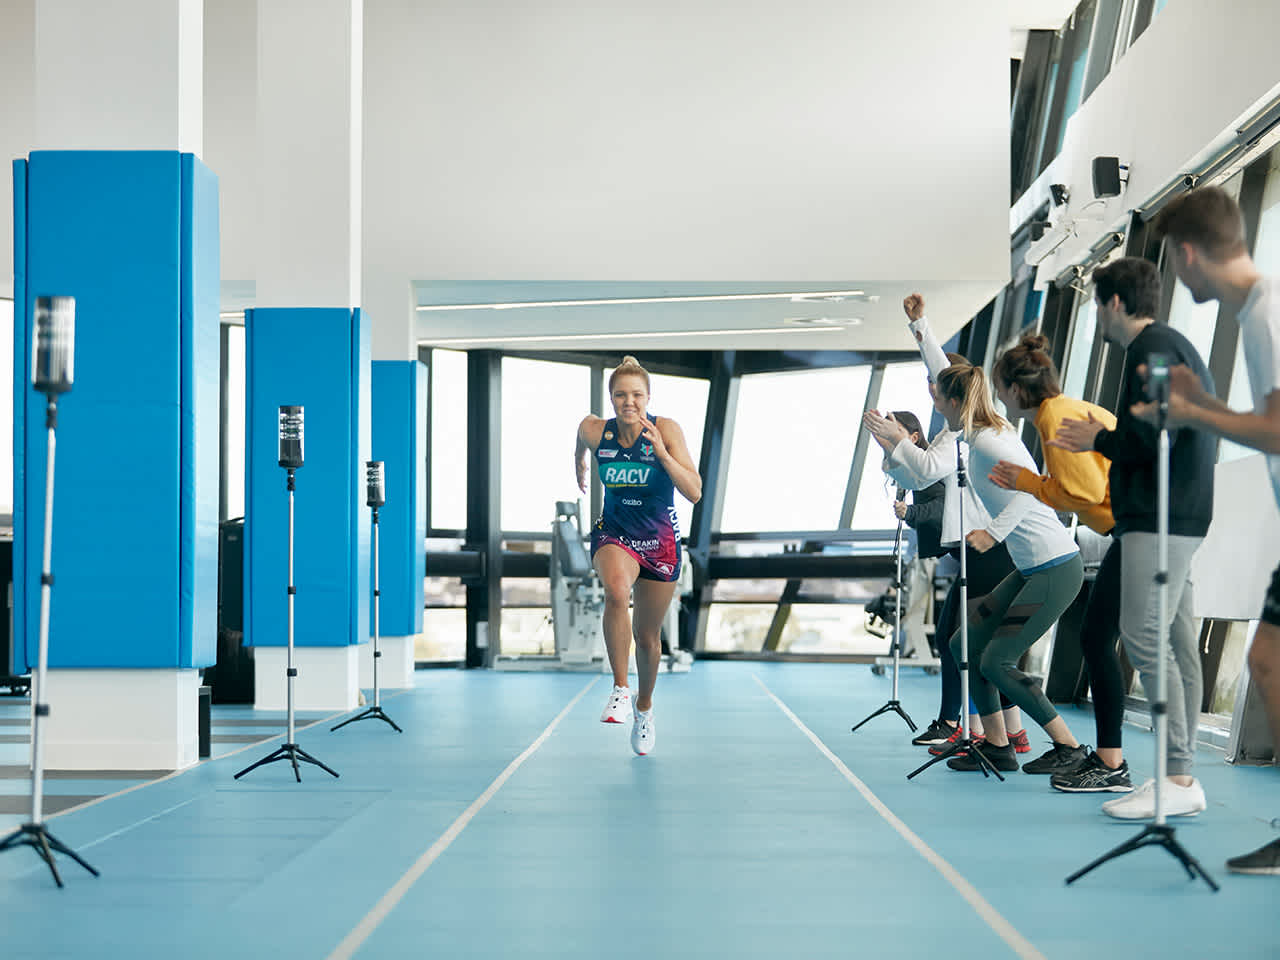 Students analysing athlete running down indoor track